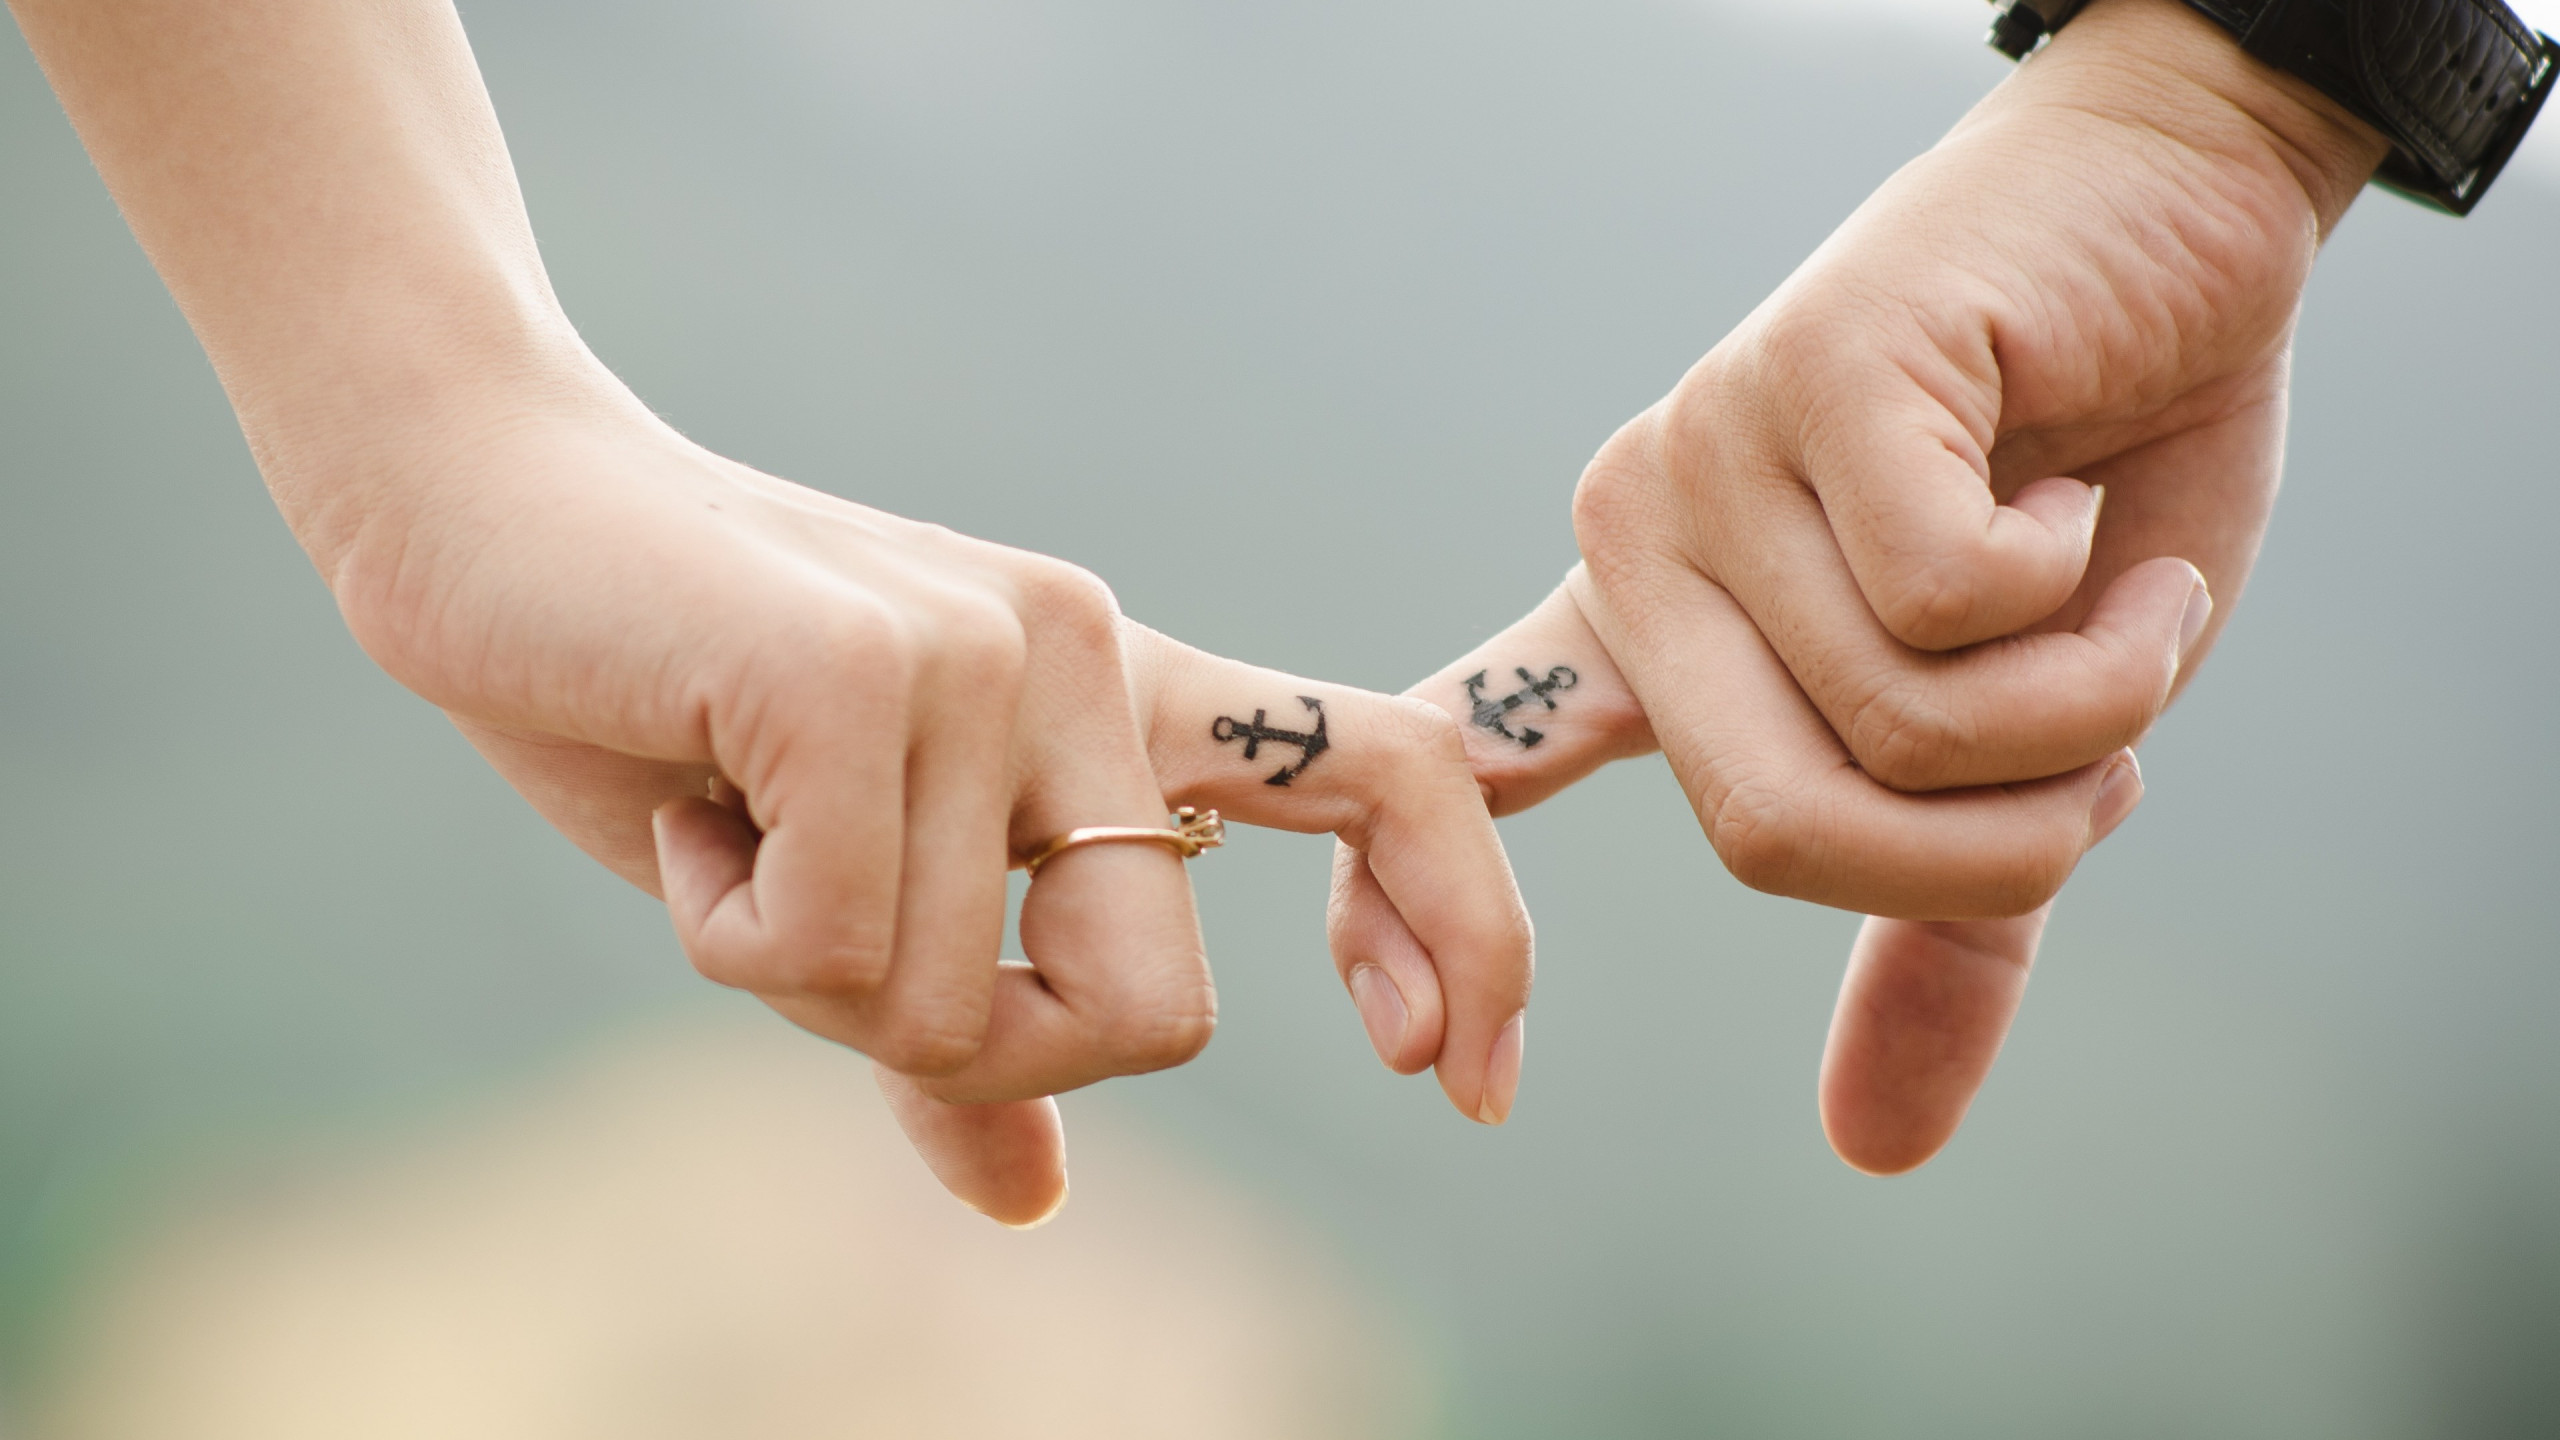 Hands, love, couple, ring wallpaper 2560x1440